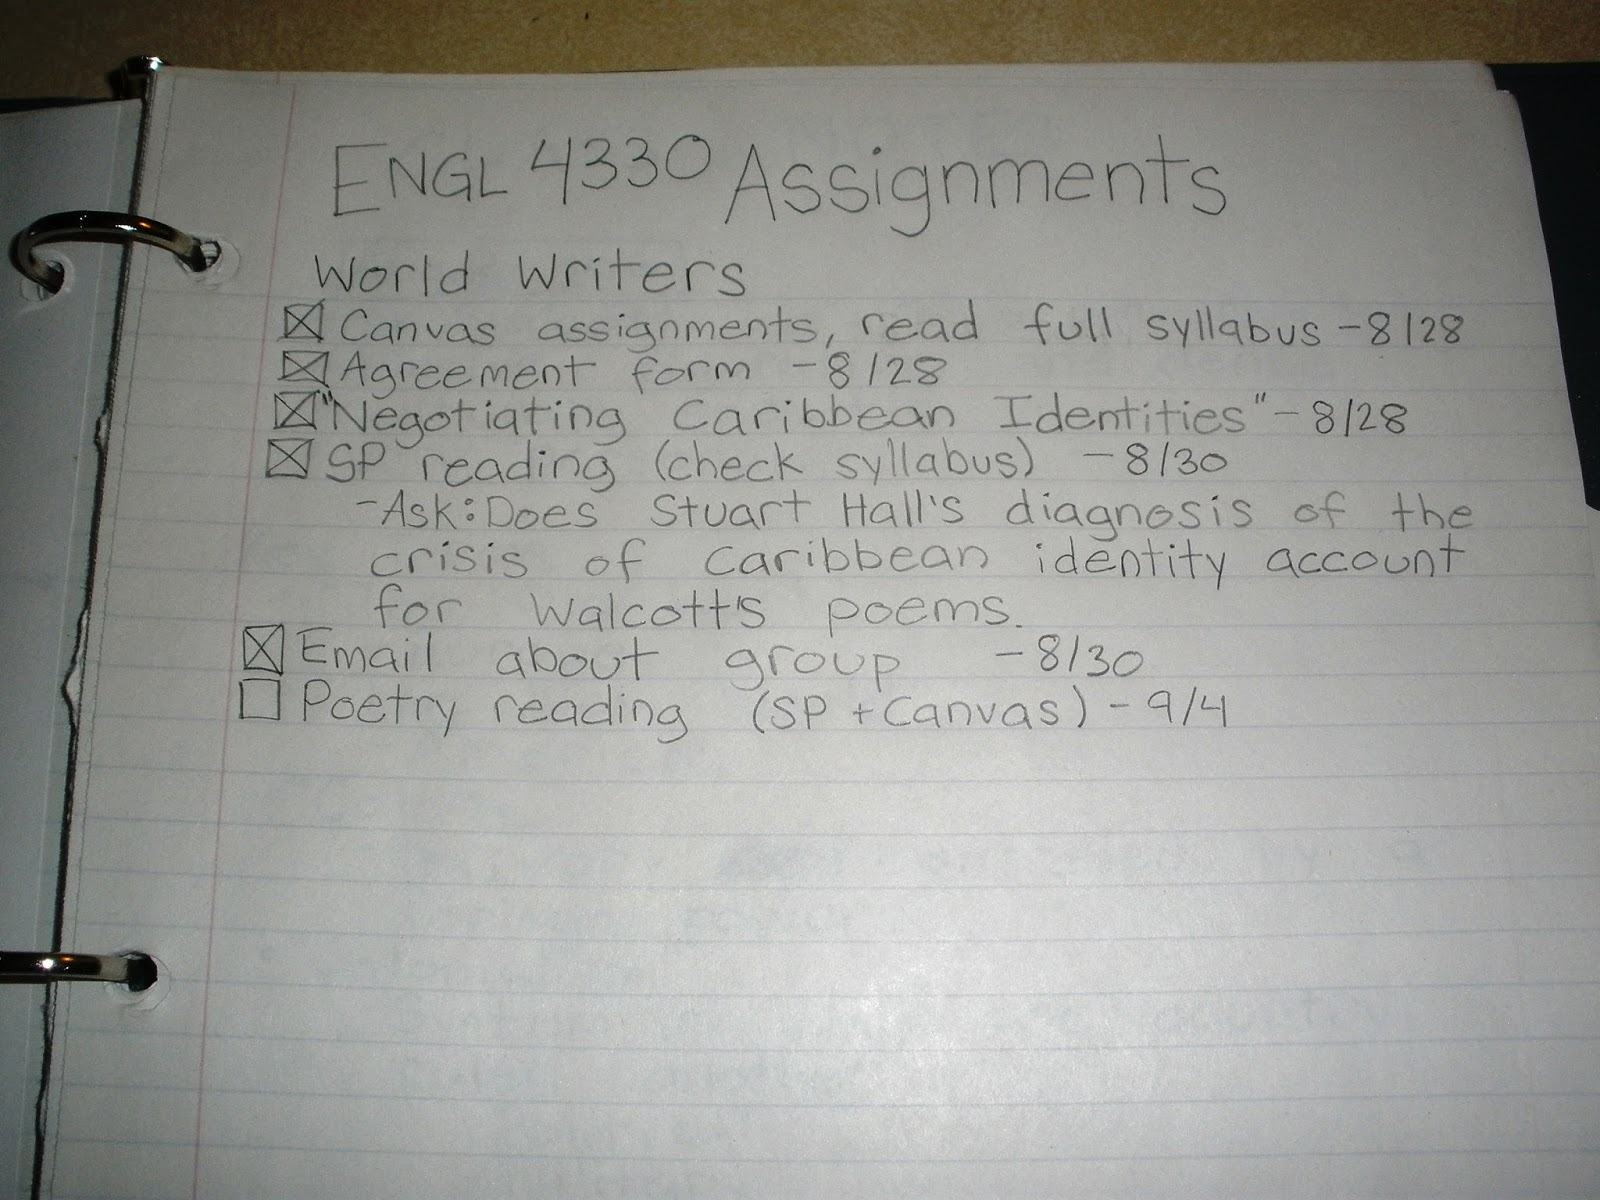 essay on man and other poem pdfeports867 web fc2 com essay on man and other poem